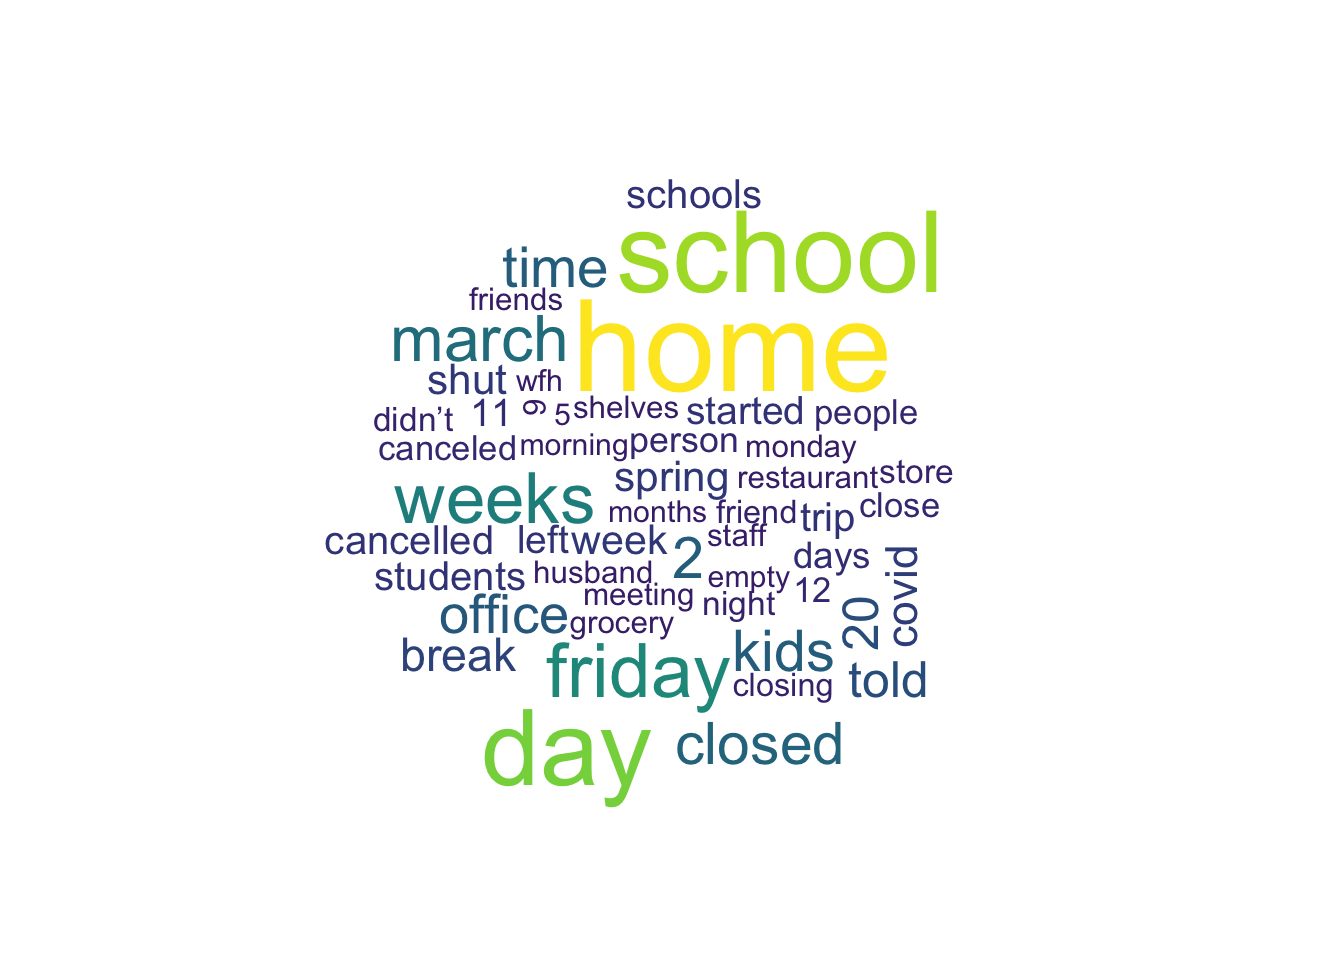 Wordcloud that shows the 50 most common words in tweets that mention March 13 in their text. Home, school, day, friday, and week are prominently bigger than other words.